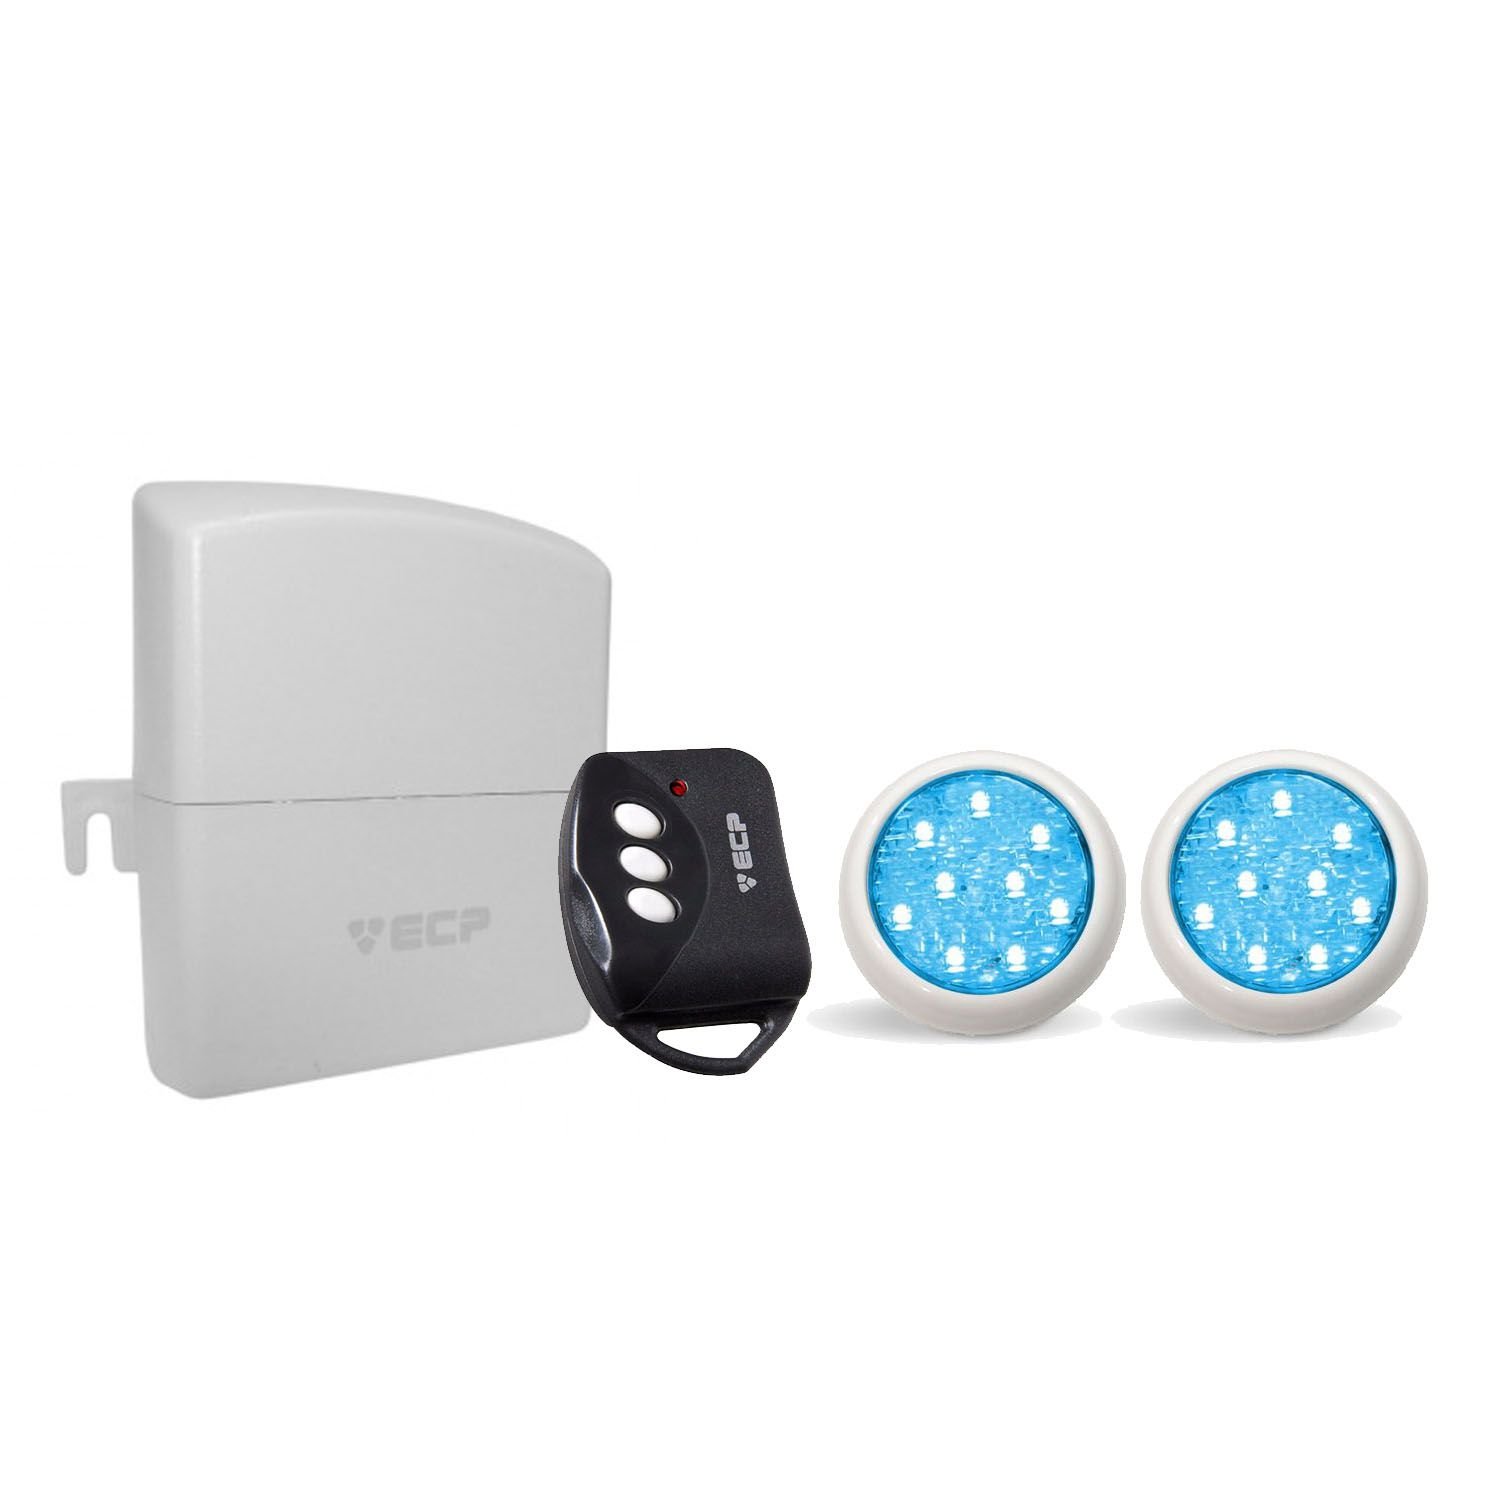 Kit 2 Led Piscina Monocromático 9w + Central + Controle